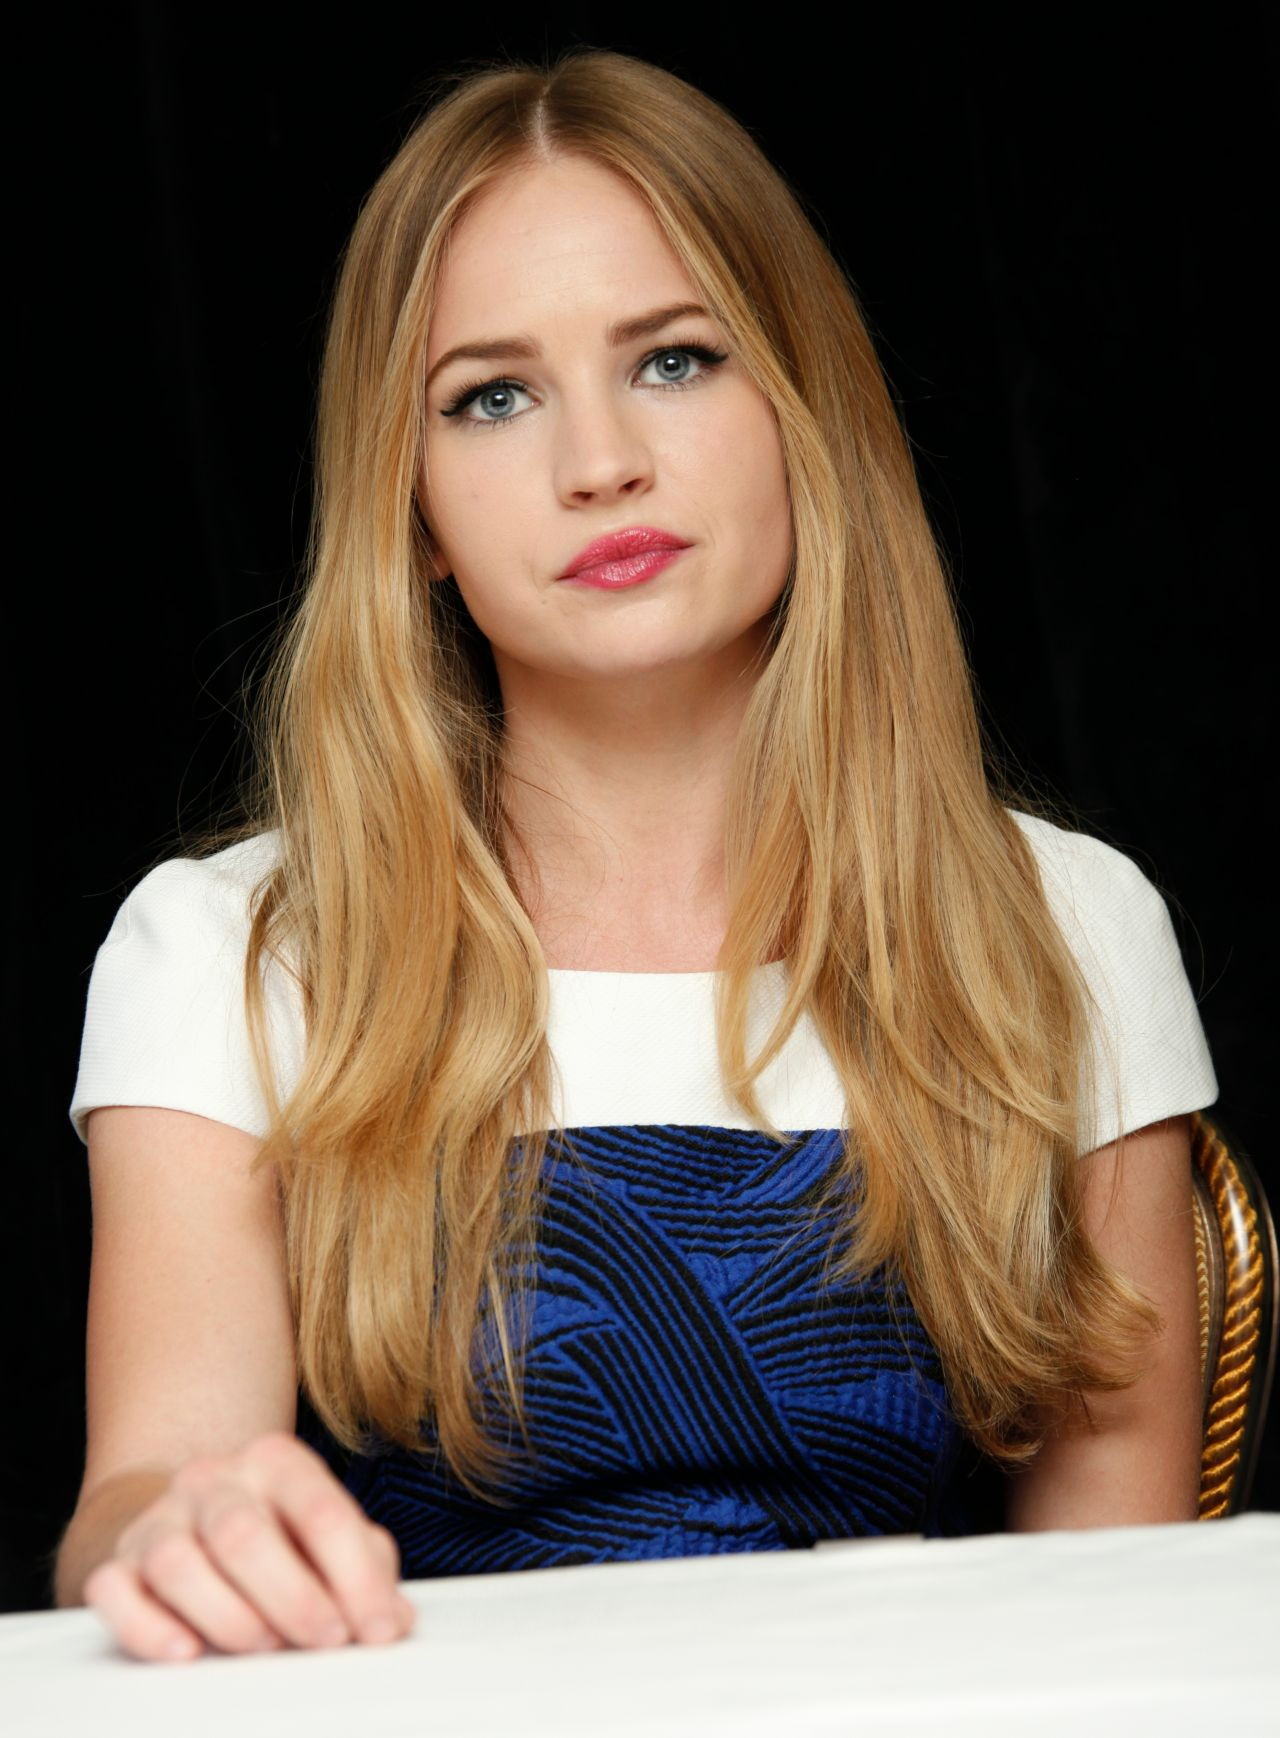 Foto Britt Robertson naked (67 foto and video), Topless, Cleavage, Twitter, lingerie 2015